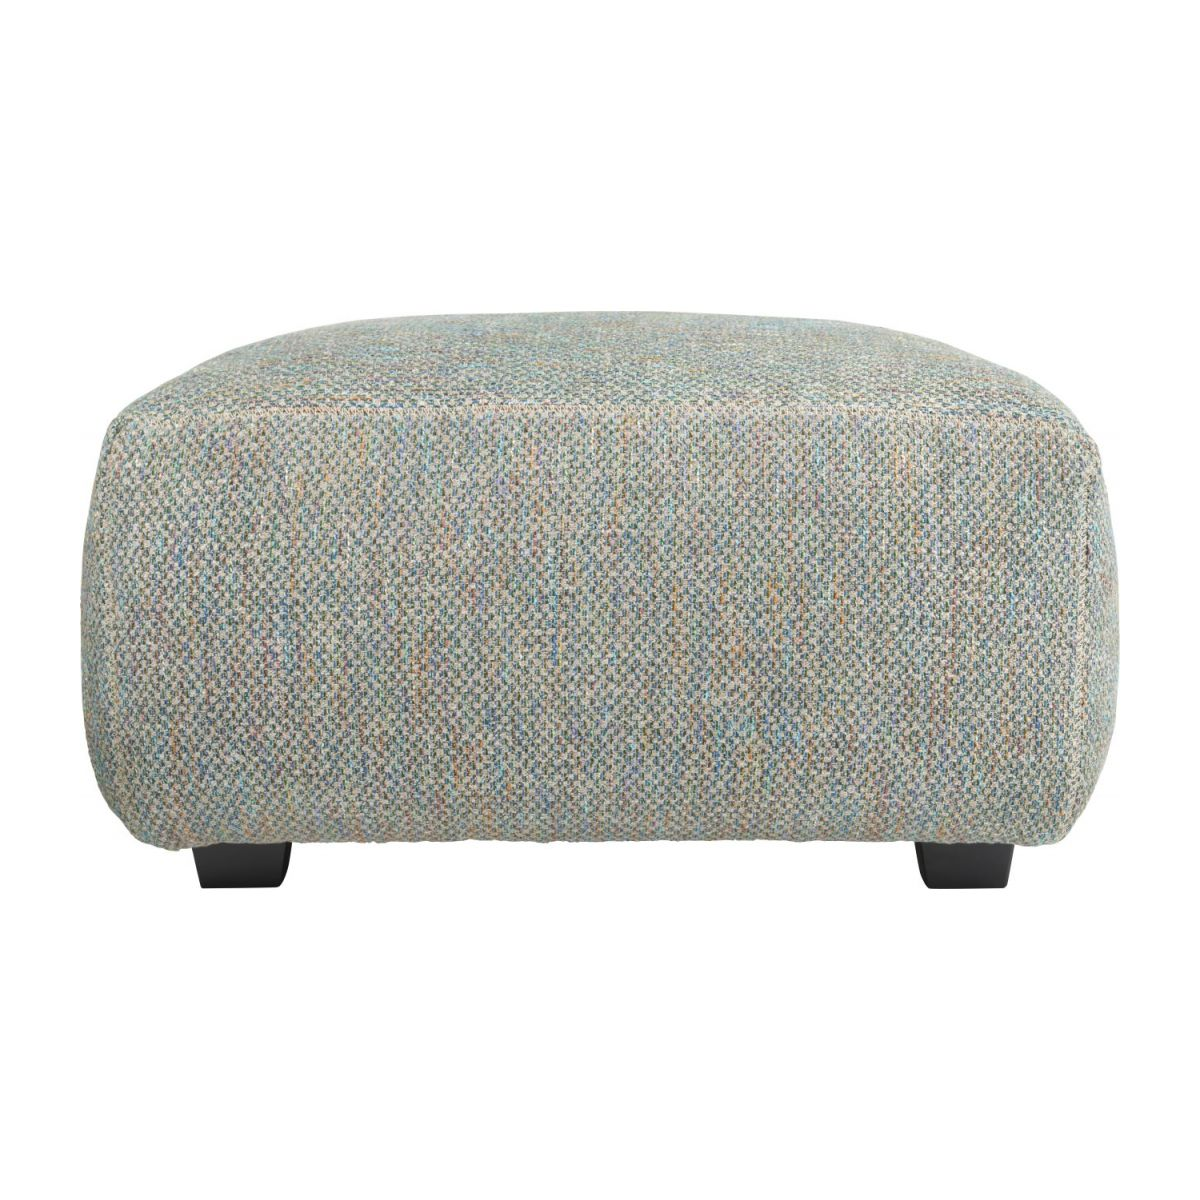 Hocker aus Stoff Bellagio organic green n°4